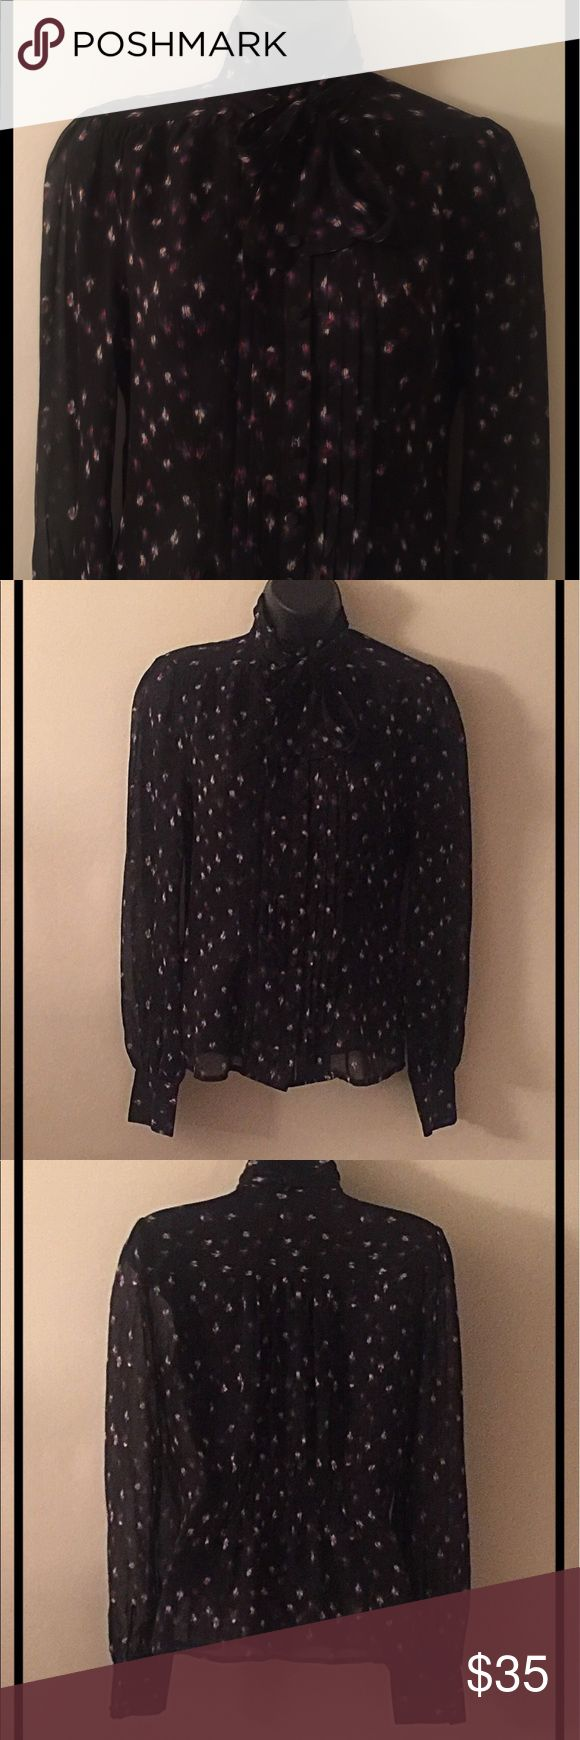 Bebe Silk Multi Color Blouse Bebe silk black multi-color long sleeve button down Blouse.  Perfect for any professional occasion.  Ties into a bow in front.  Size:  XS.  100% silk.  Absolutely gorgeous! bebe Tops Blouses